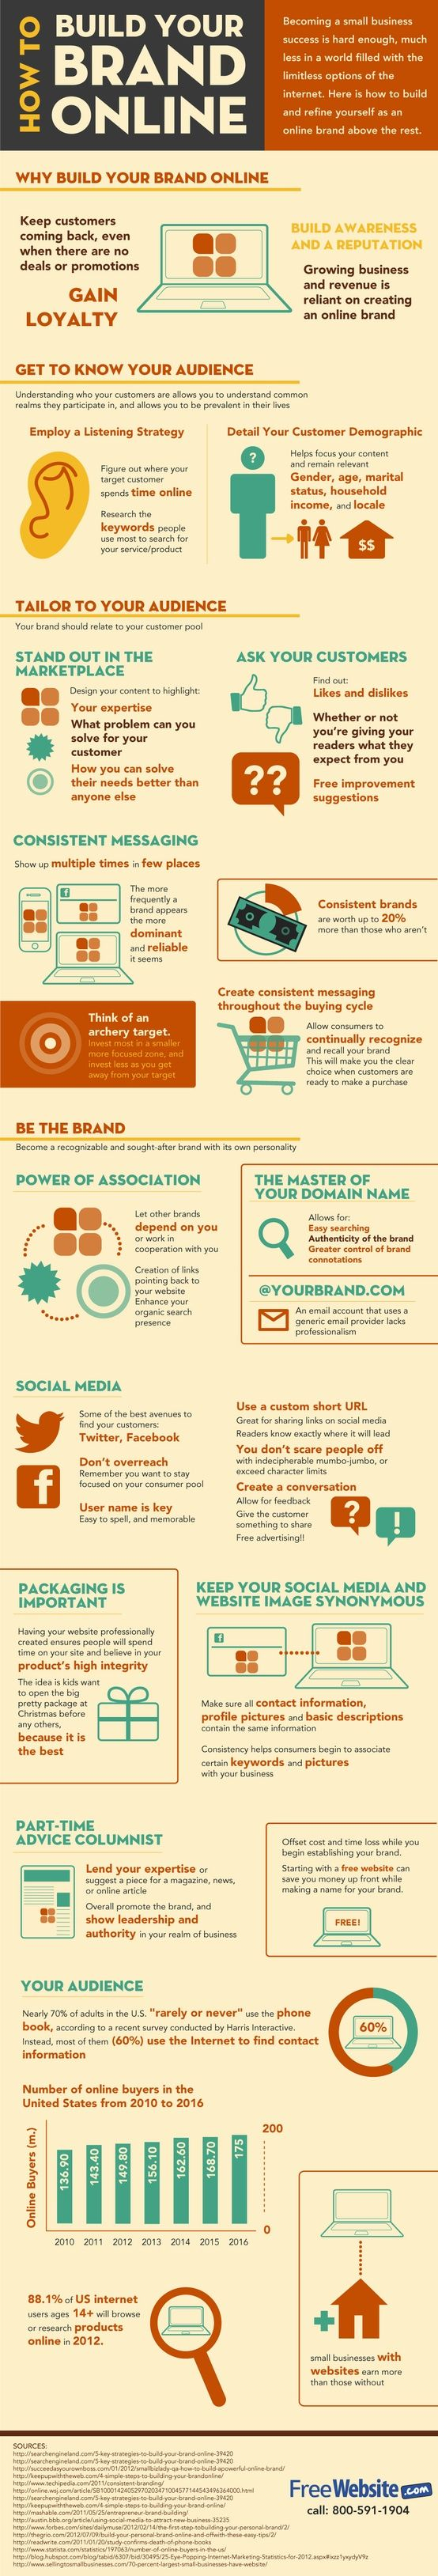 How to Build Your Brand #Online #Infographic (DE)